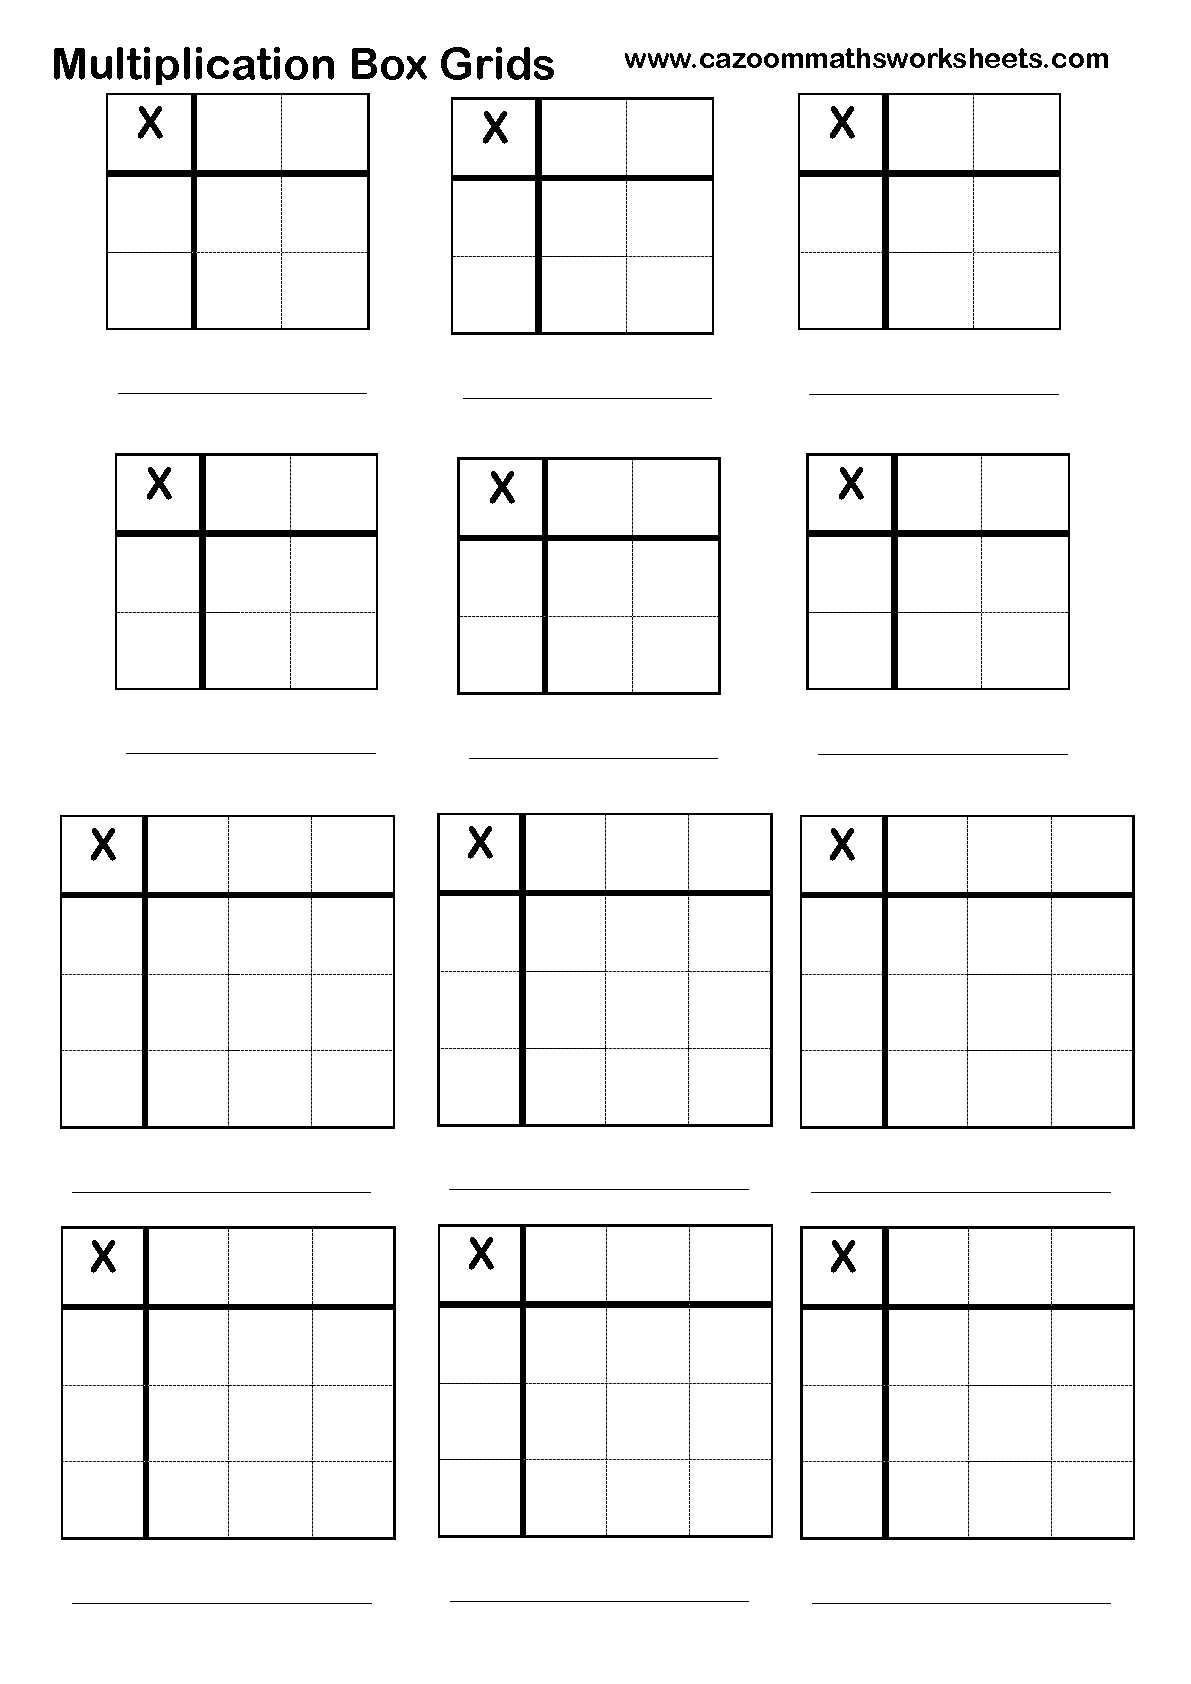 Worksheets Box Method Multiplication Worksheet number resources multiplication math and school box grid help sheet